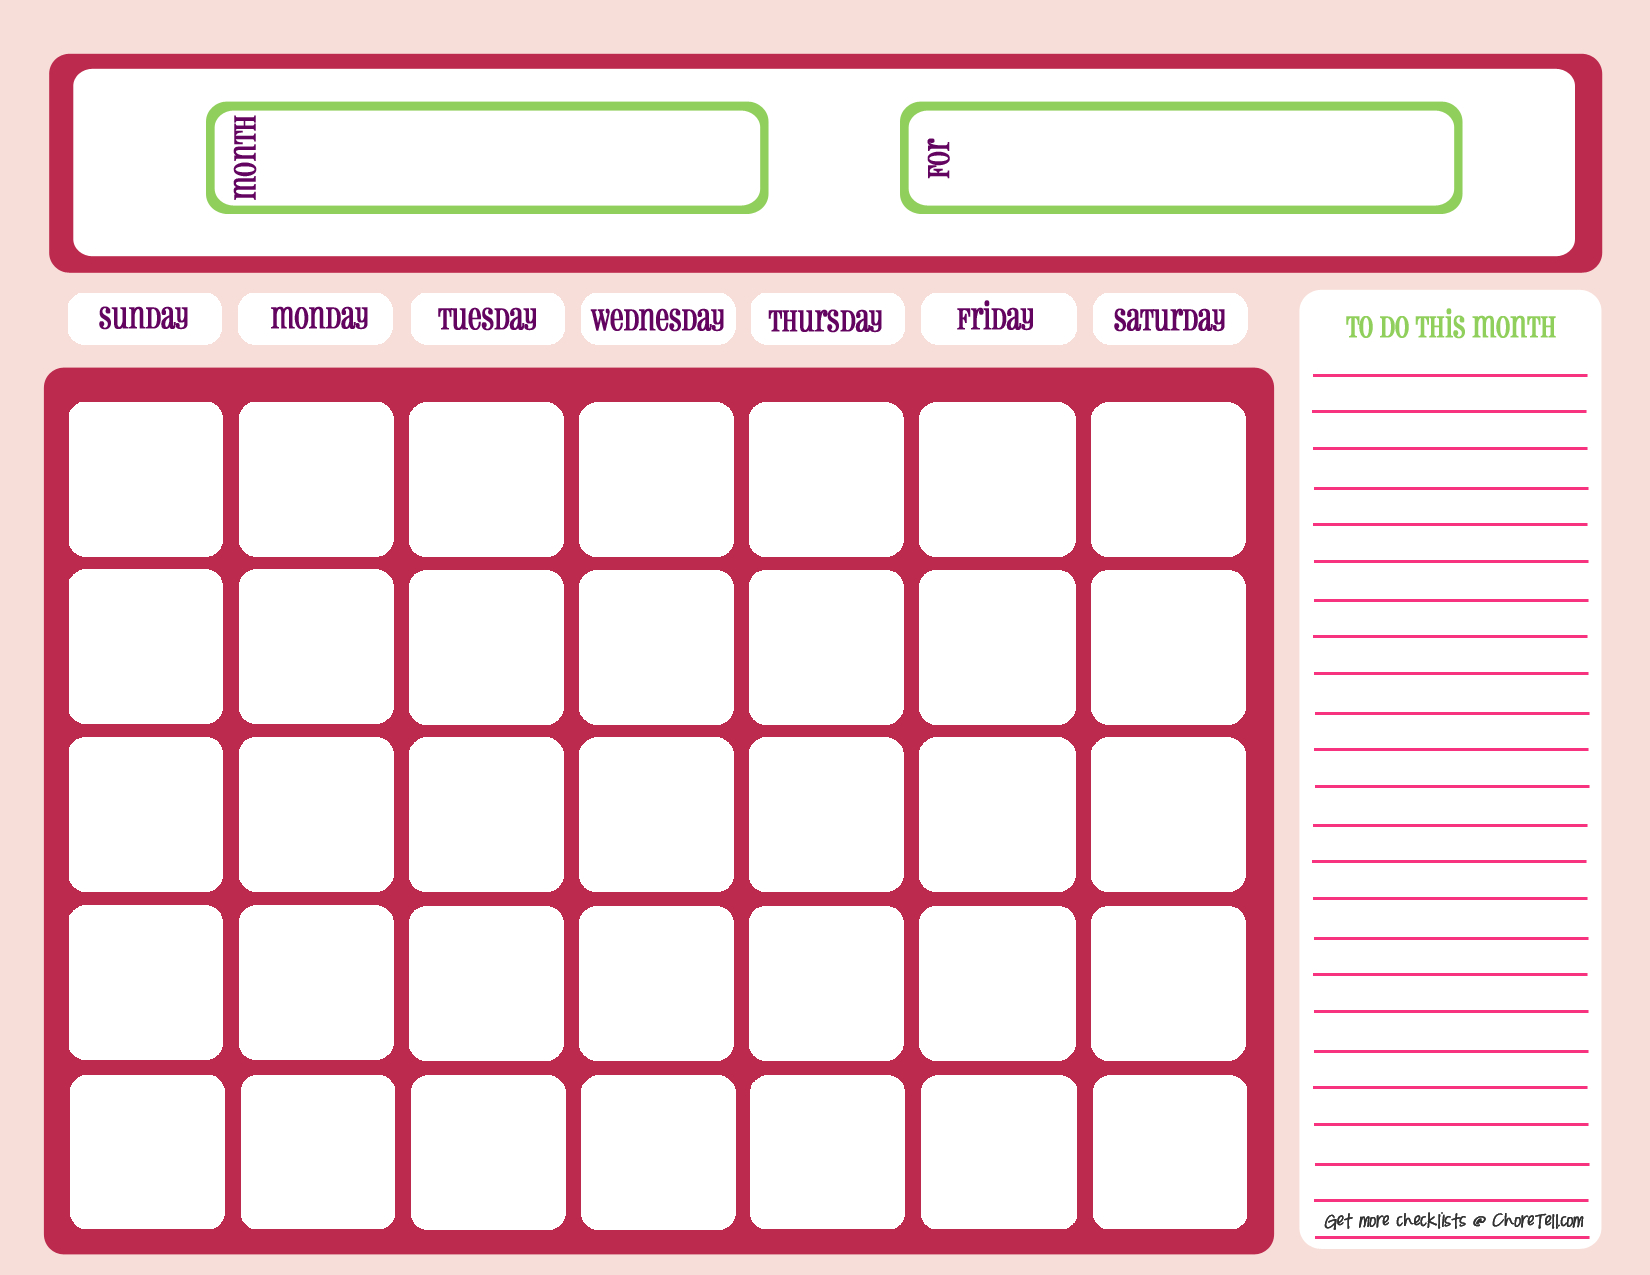 Blank Month Calendar - Pinks - Free Printable Downloads From Choretell within Free Cute Printable Calendar Templates